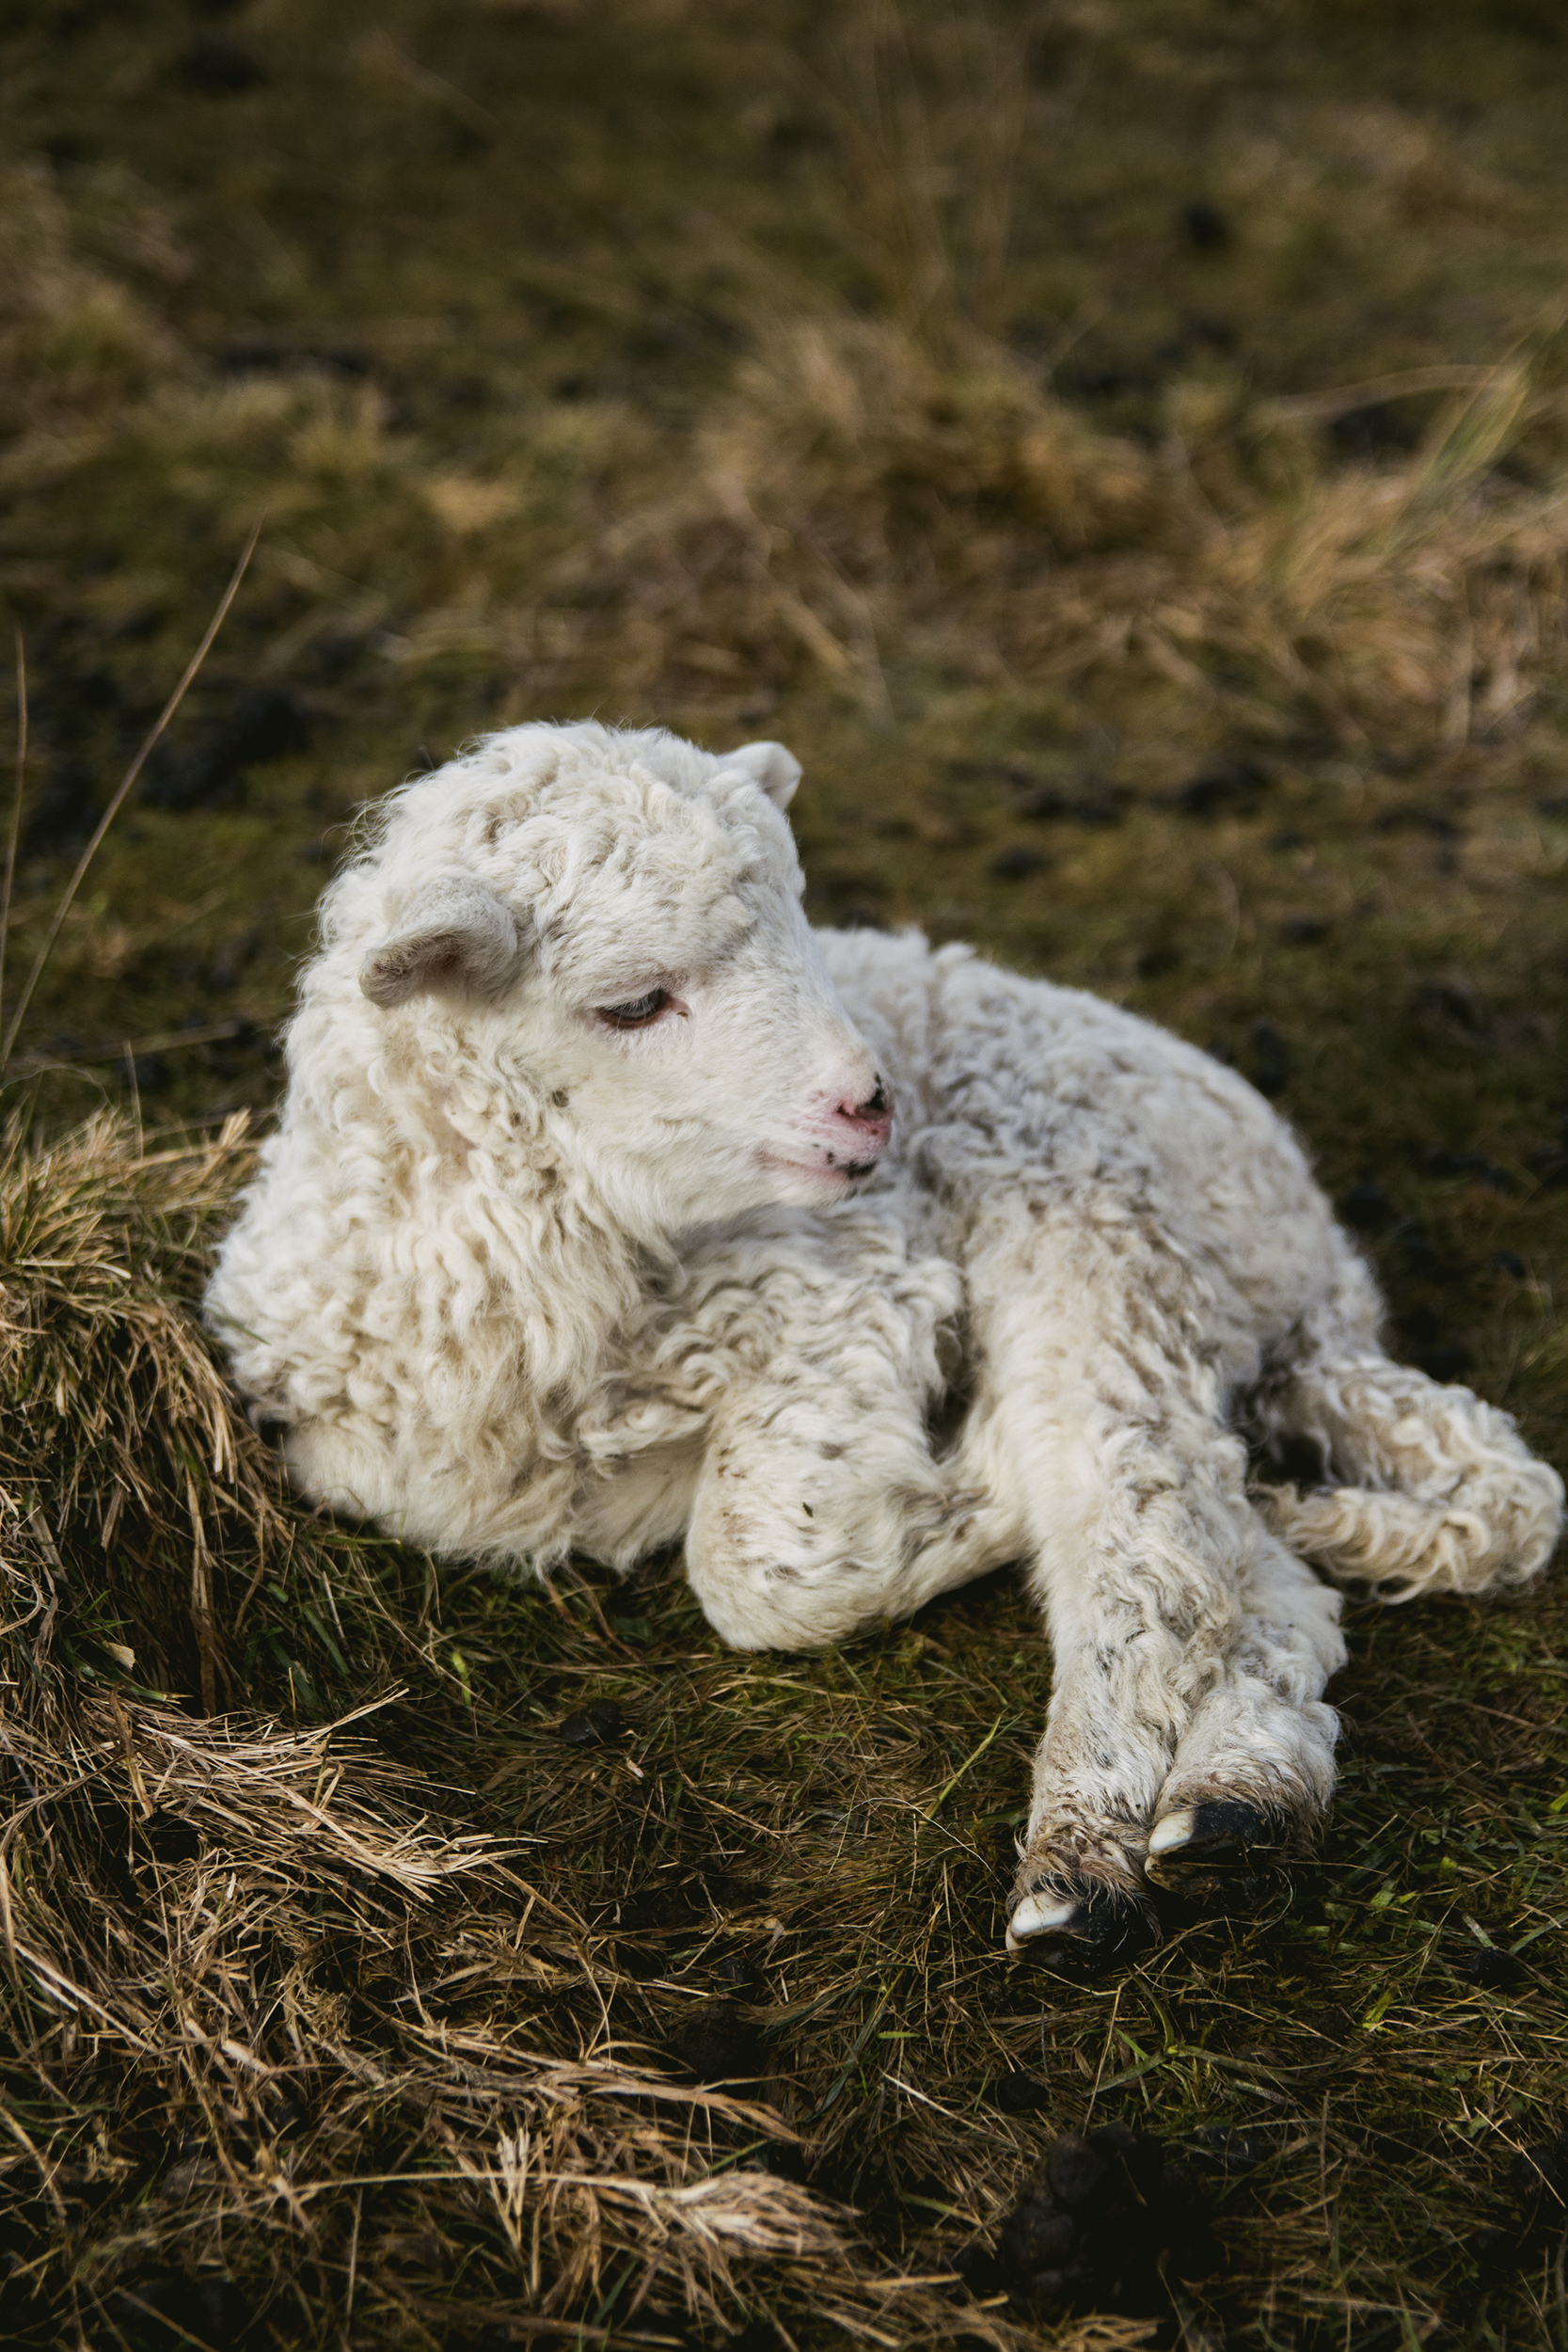 Best Iphone 4 Wallpapers Hd White Lamb Near Fence 183 Free Stock Photo